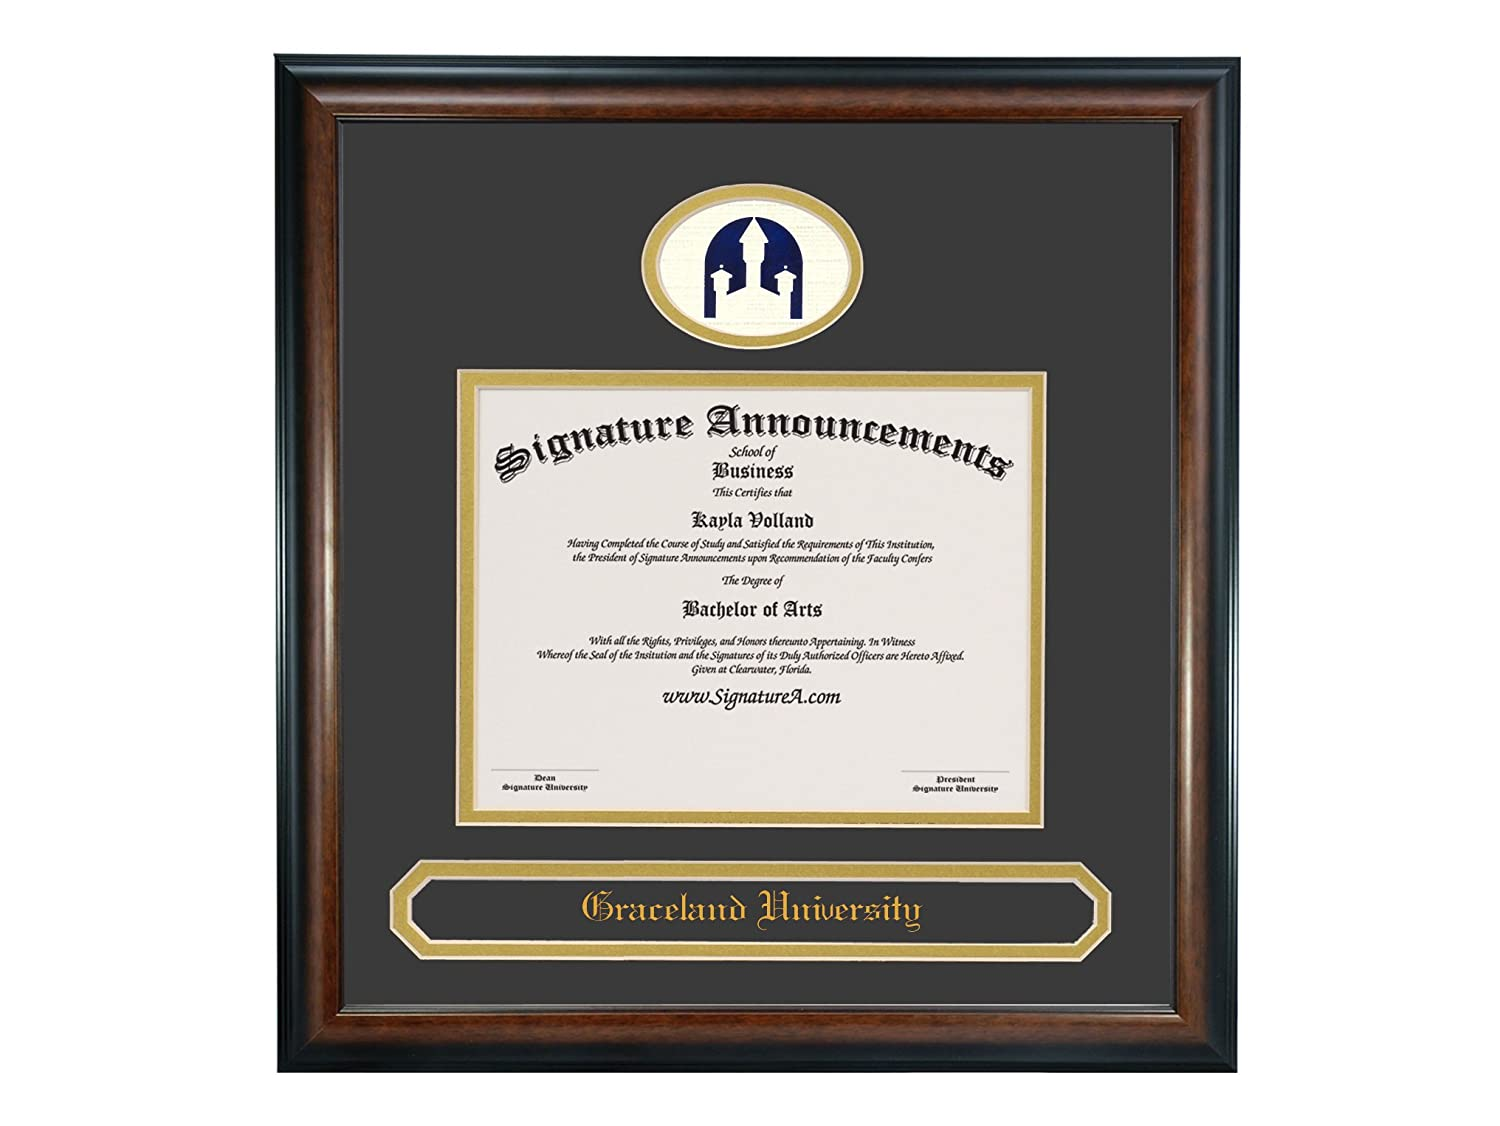 Signature Announcements Graceland-University Undergraduate Professional//Doctor Sculpted Foil Seal /& Name Graduation Diploma Frame 16 x 16 Matte Mahogany